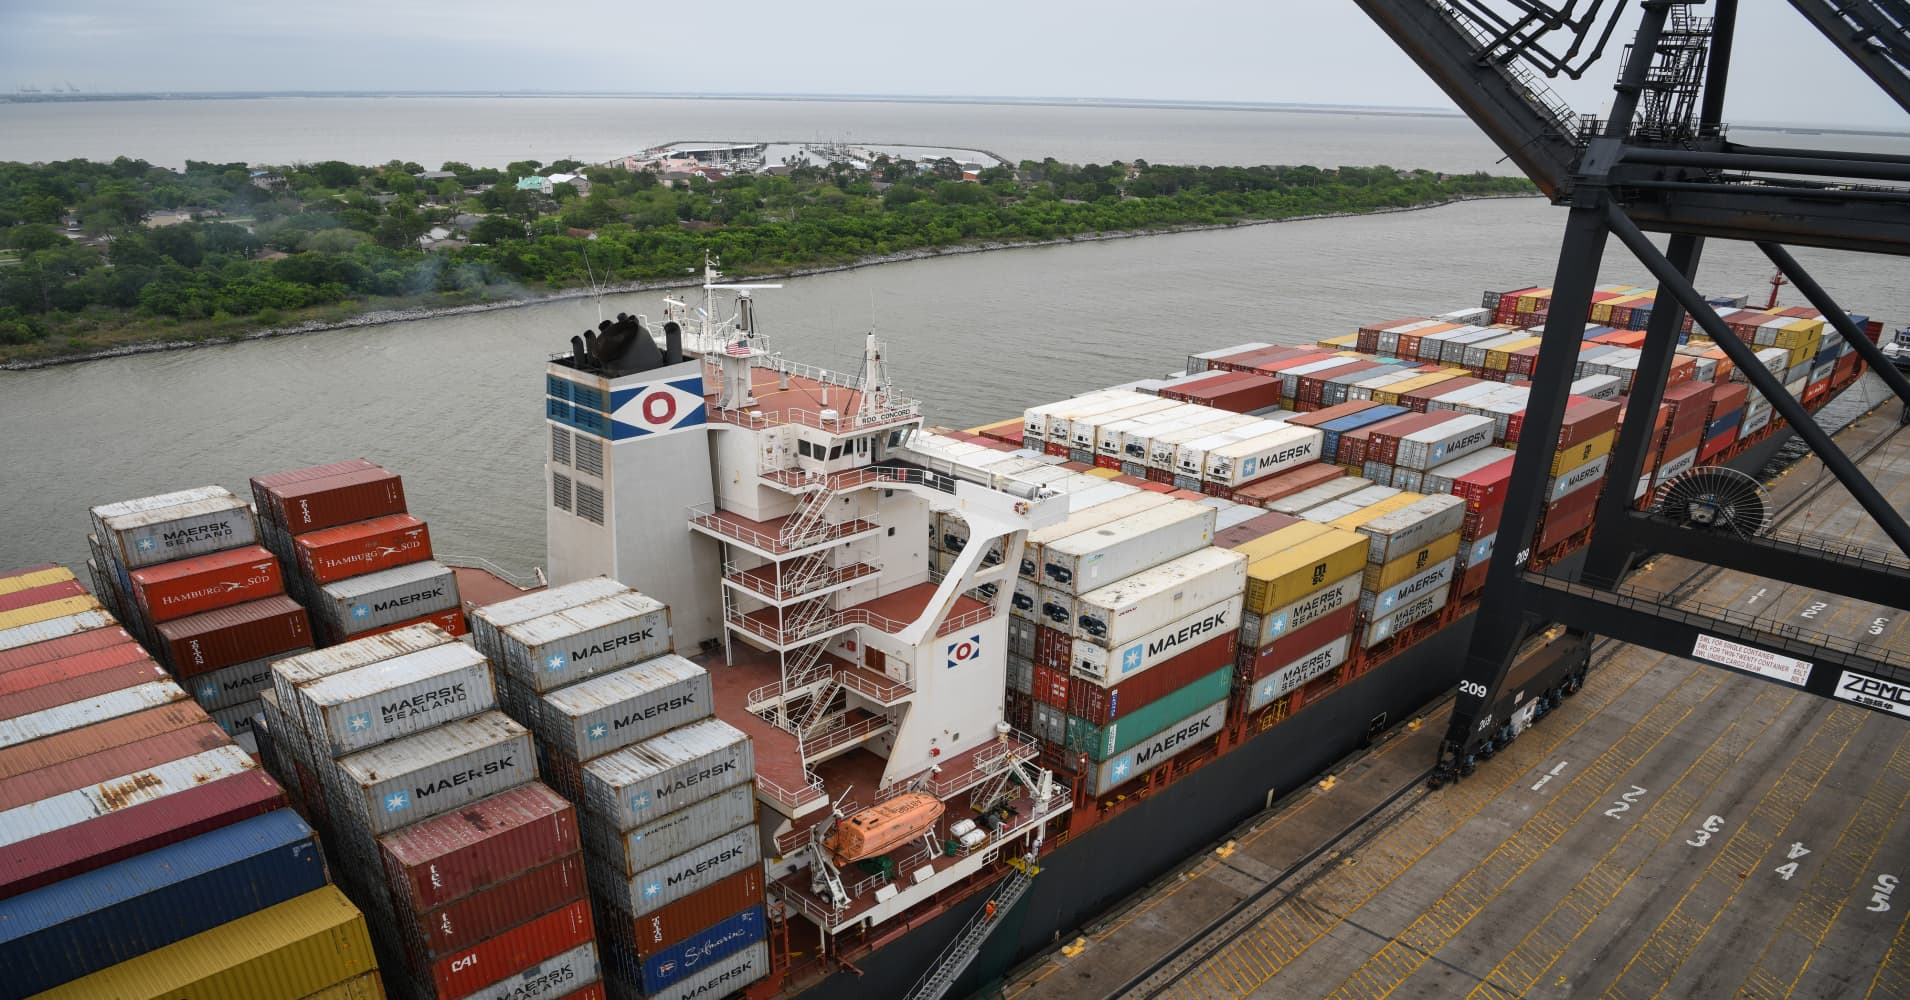 Texas exports, boosted by oil, rise 3 times faster than the US increase, outshining California